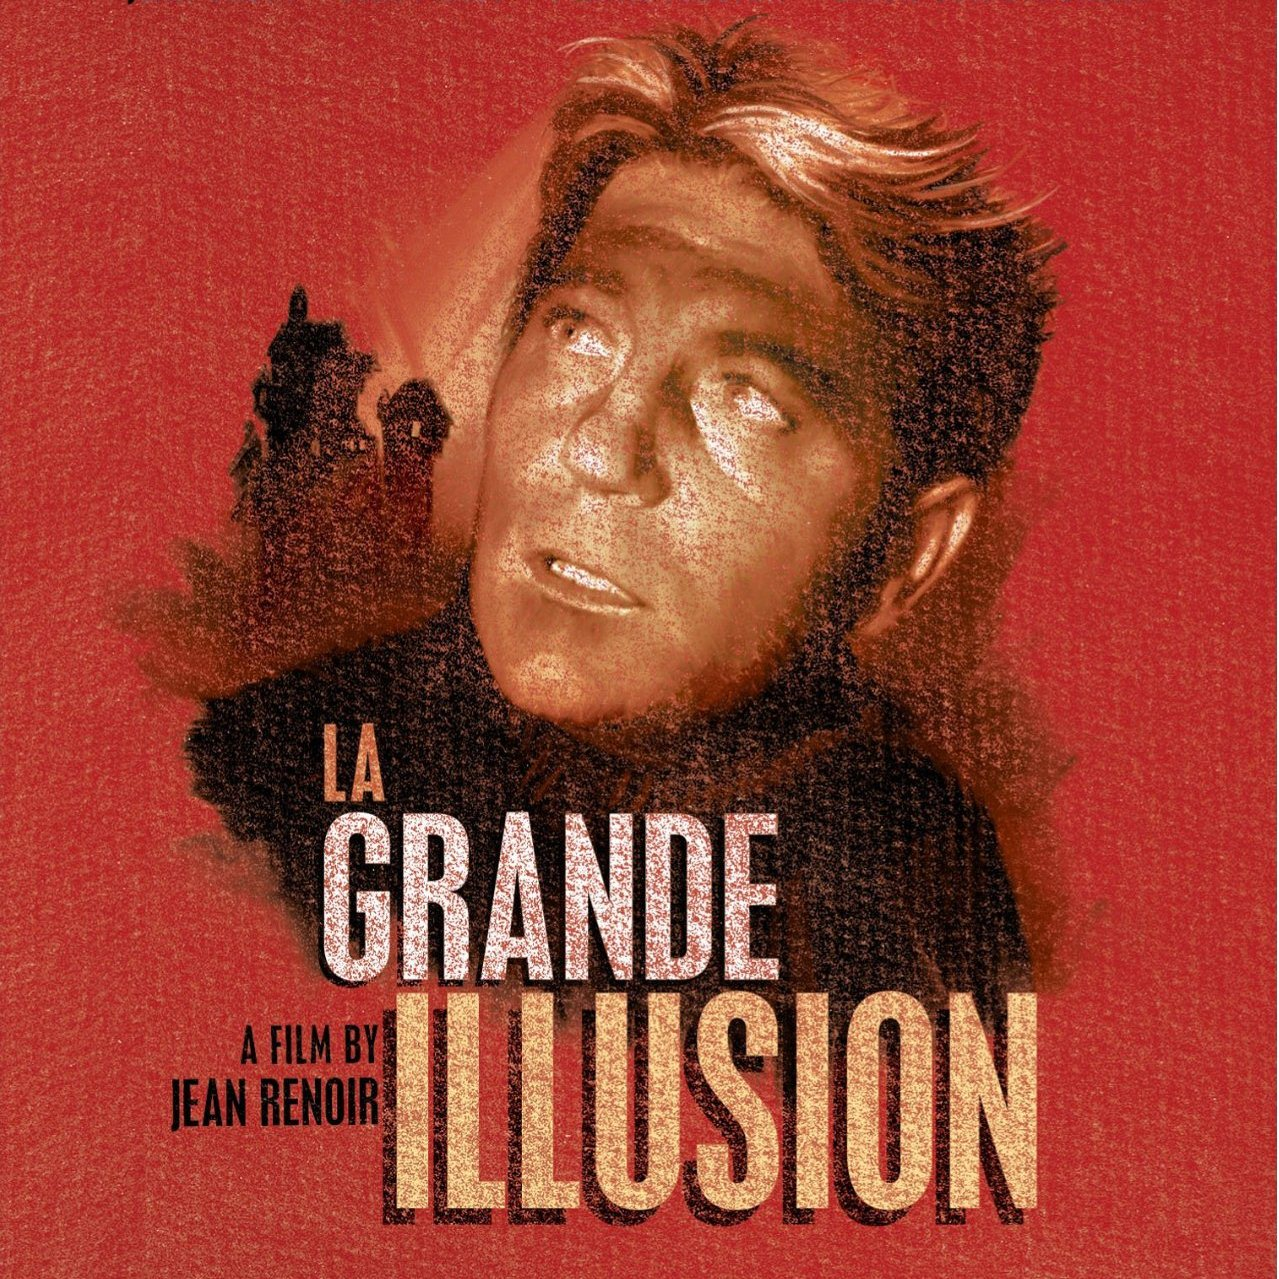 Grand Illusion – Criterion Collection #1